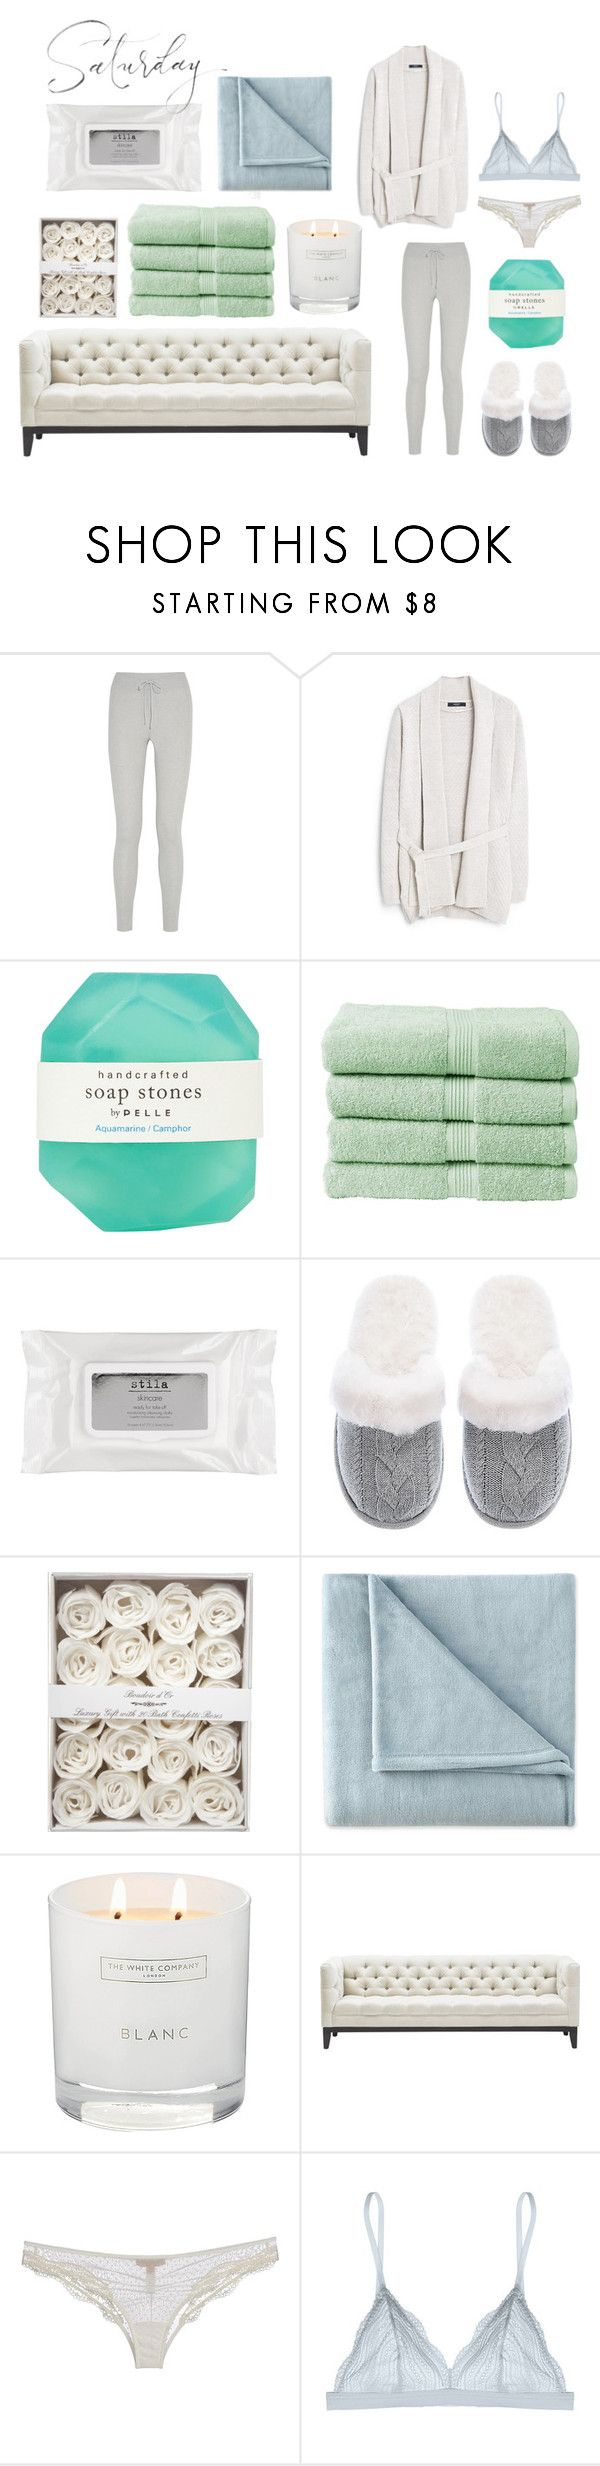 """Saturday"" by iii-i-mcmxcv ❤ liked on Polyvore featuring BACK Label, MANGO, Pelle, Christy, Stila, Victoria's Secret, JCPenney Home, The White Company, Ermanno Scervino Lingerie and Cosabella"